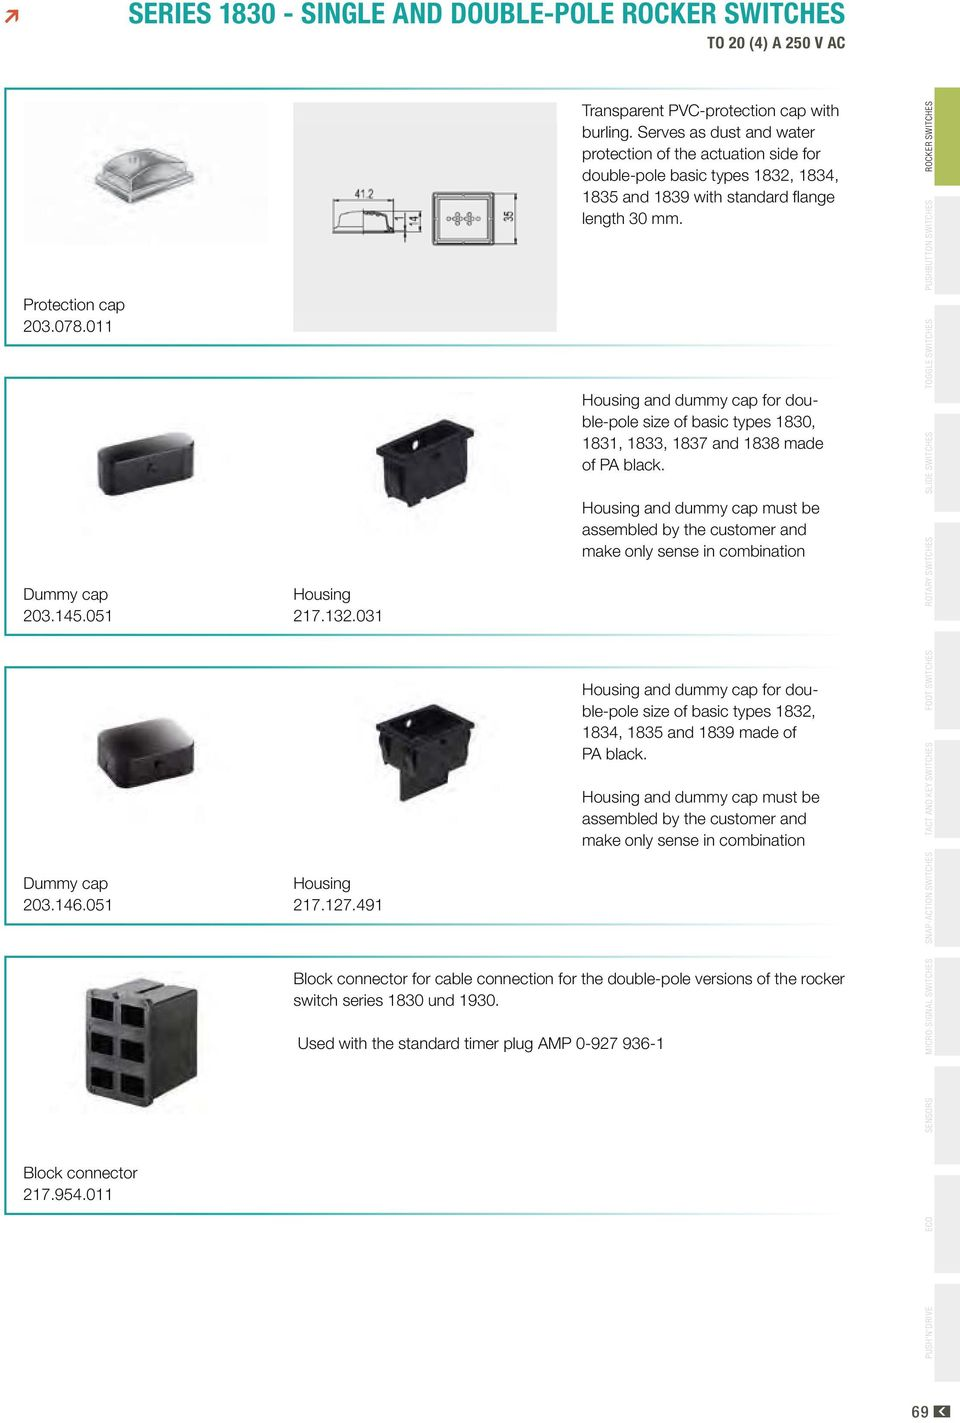 Series Single And Double Pole Rocker Switches To 20 4 A 250 V Ac Pdf Mini Rockers Illuminated Non Spst Housing Dummy Cap For Size Of Basic Types 1830 1831